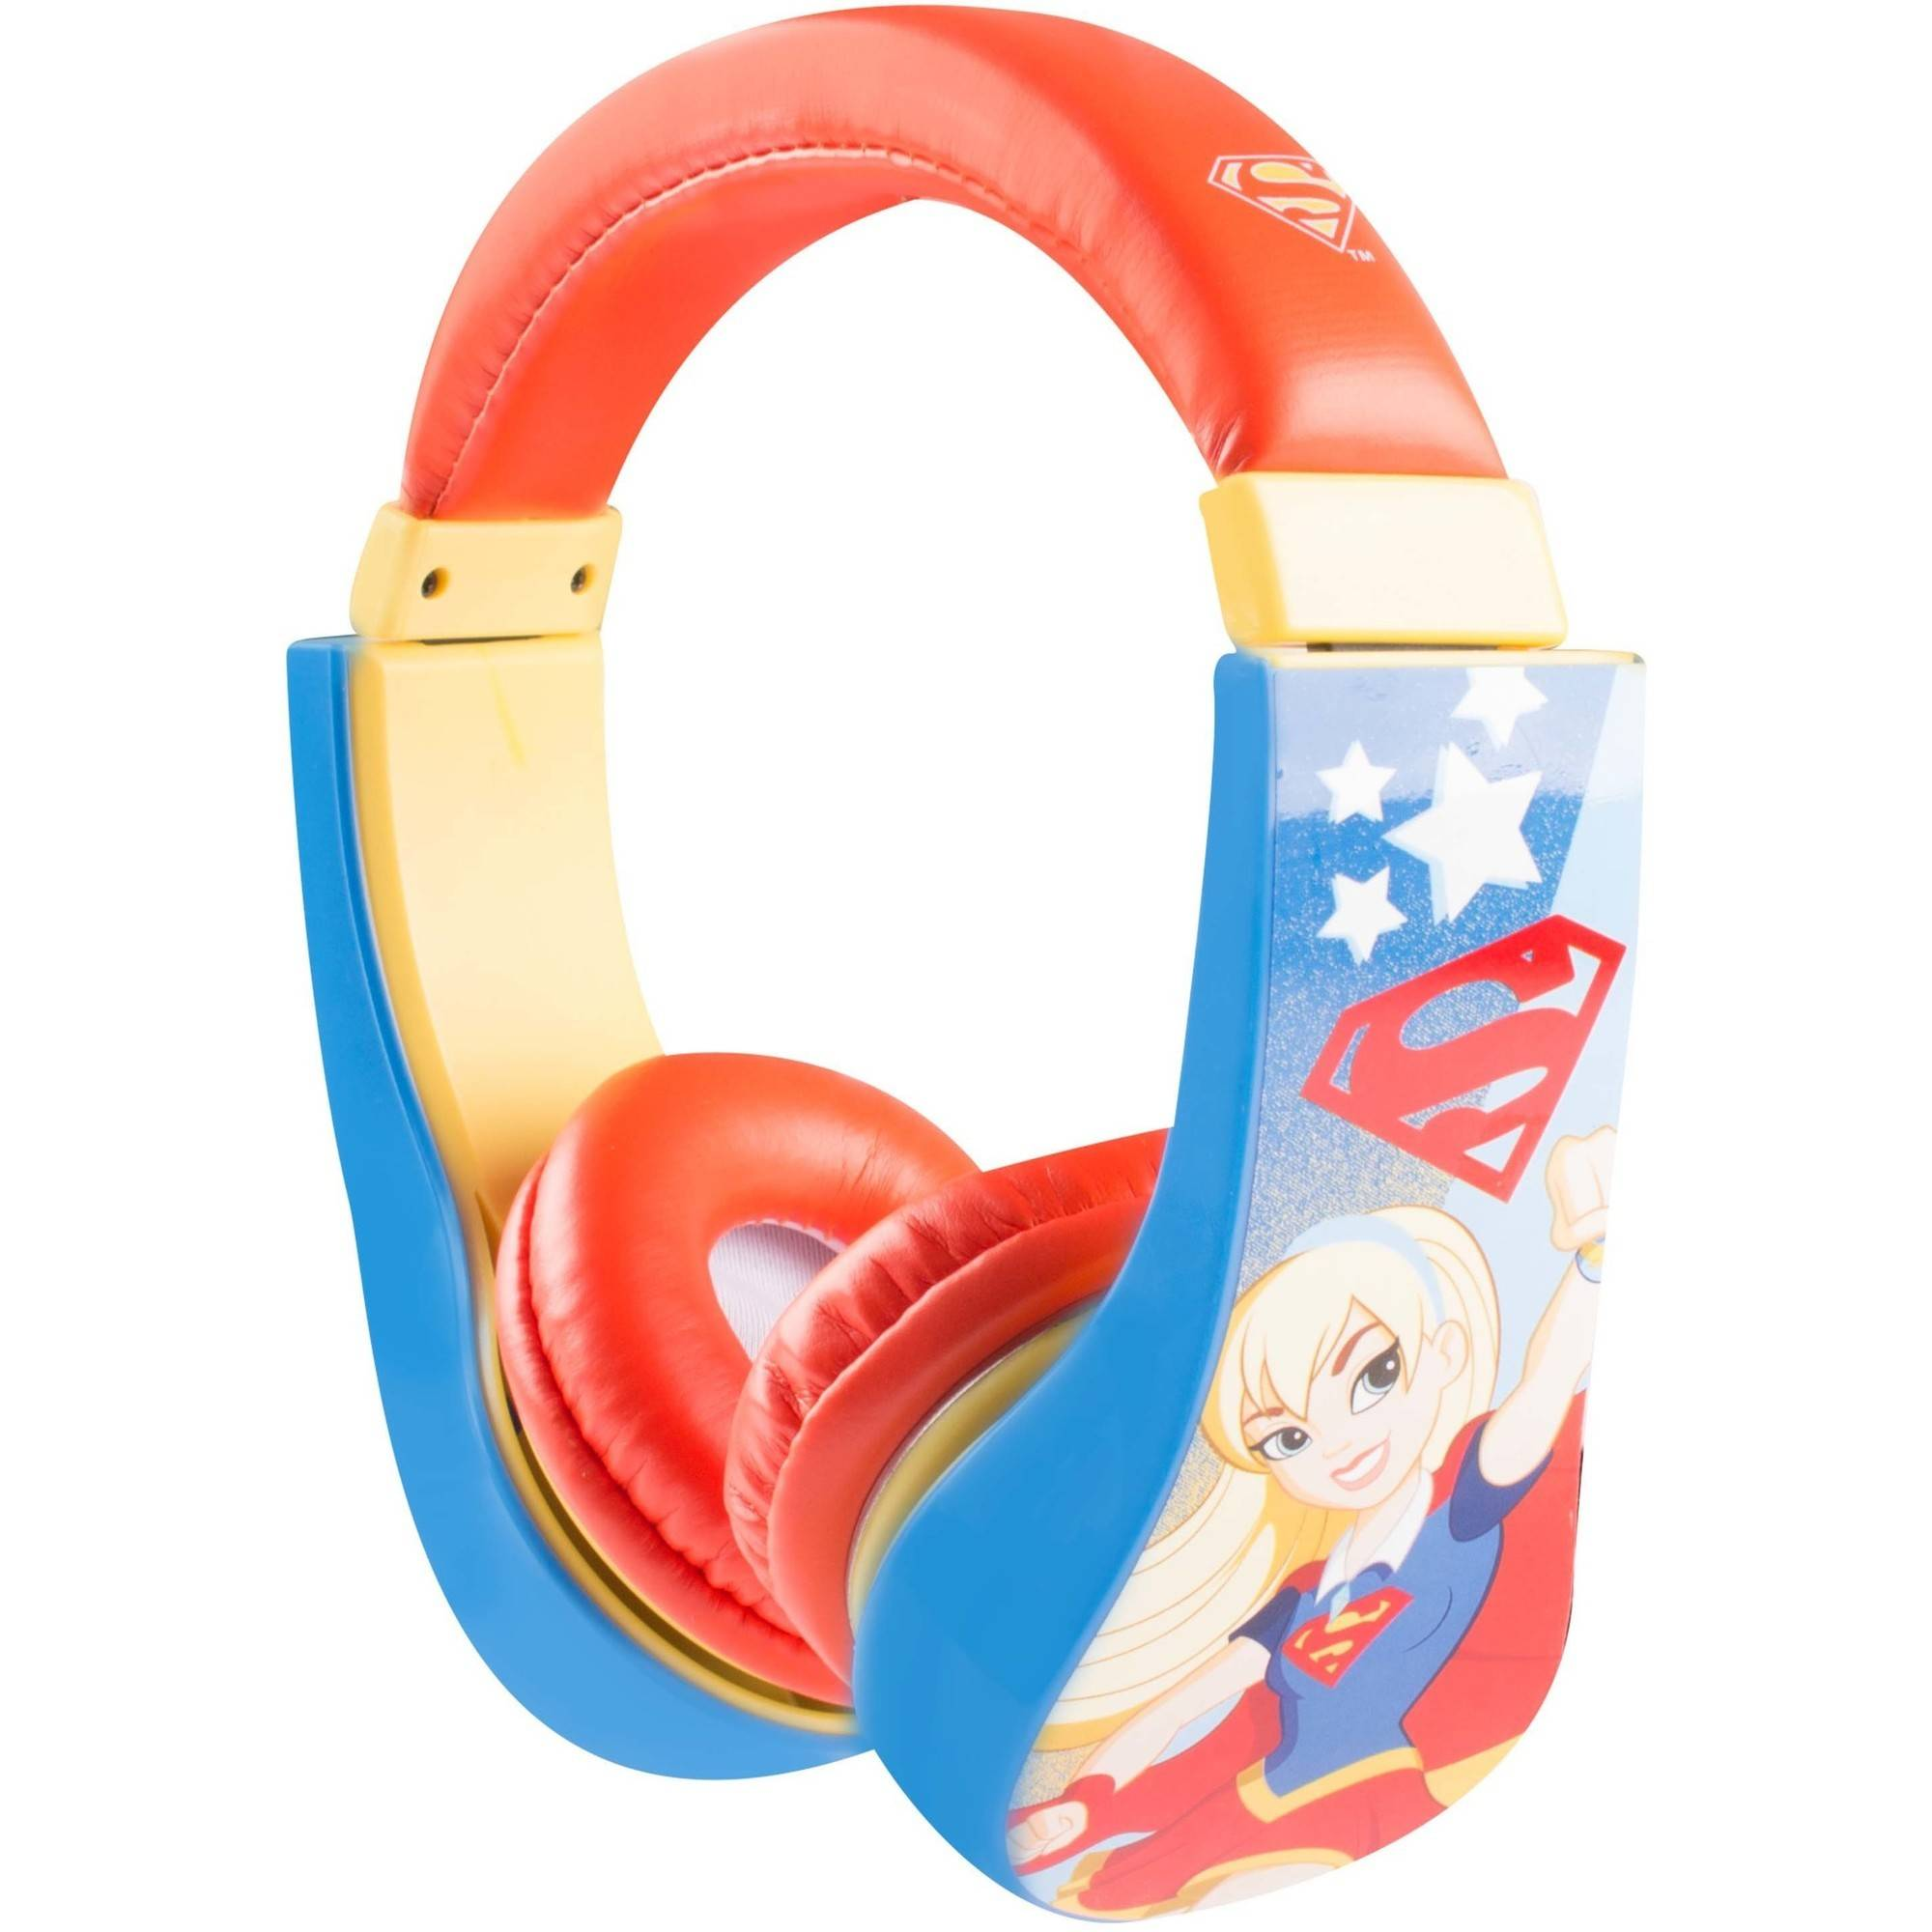 Sakar DC Comics 30393-SG Supergirl Large Kids Safe Headphones